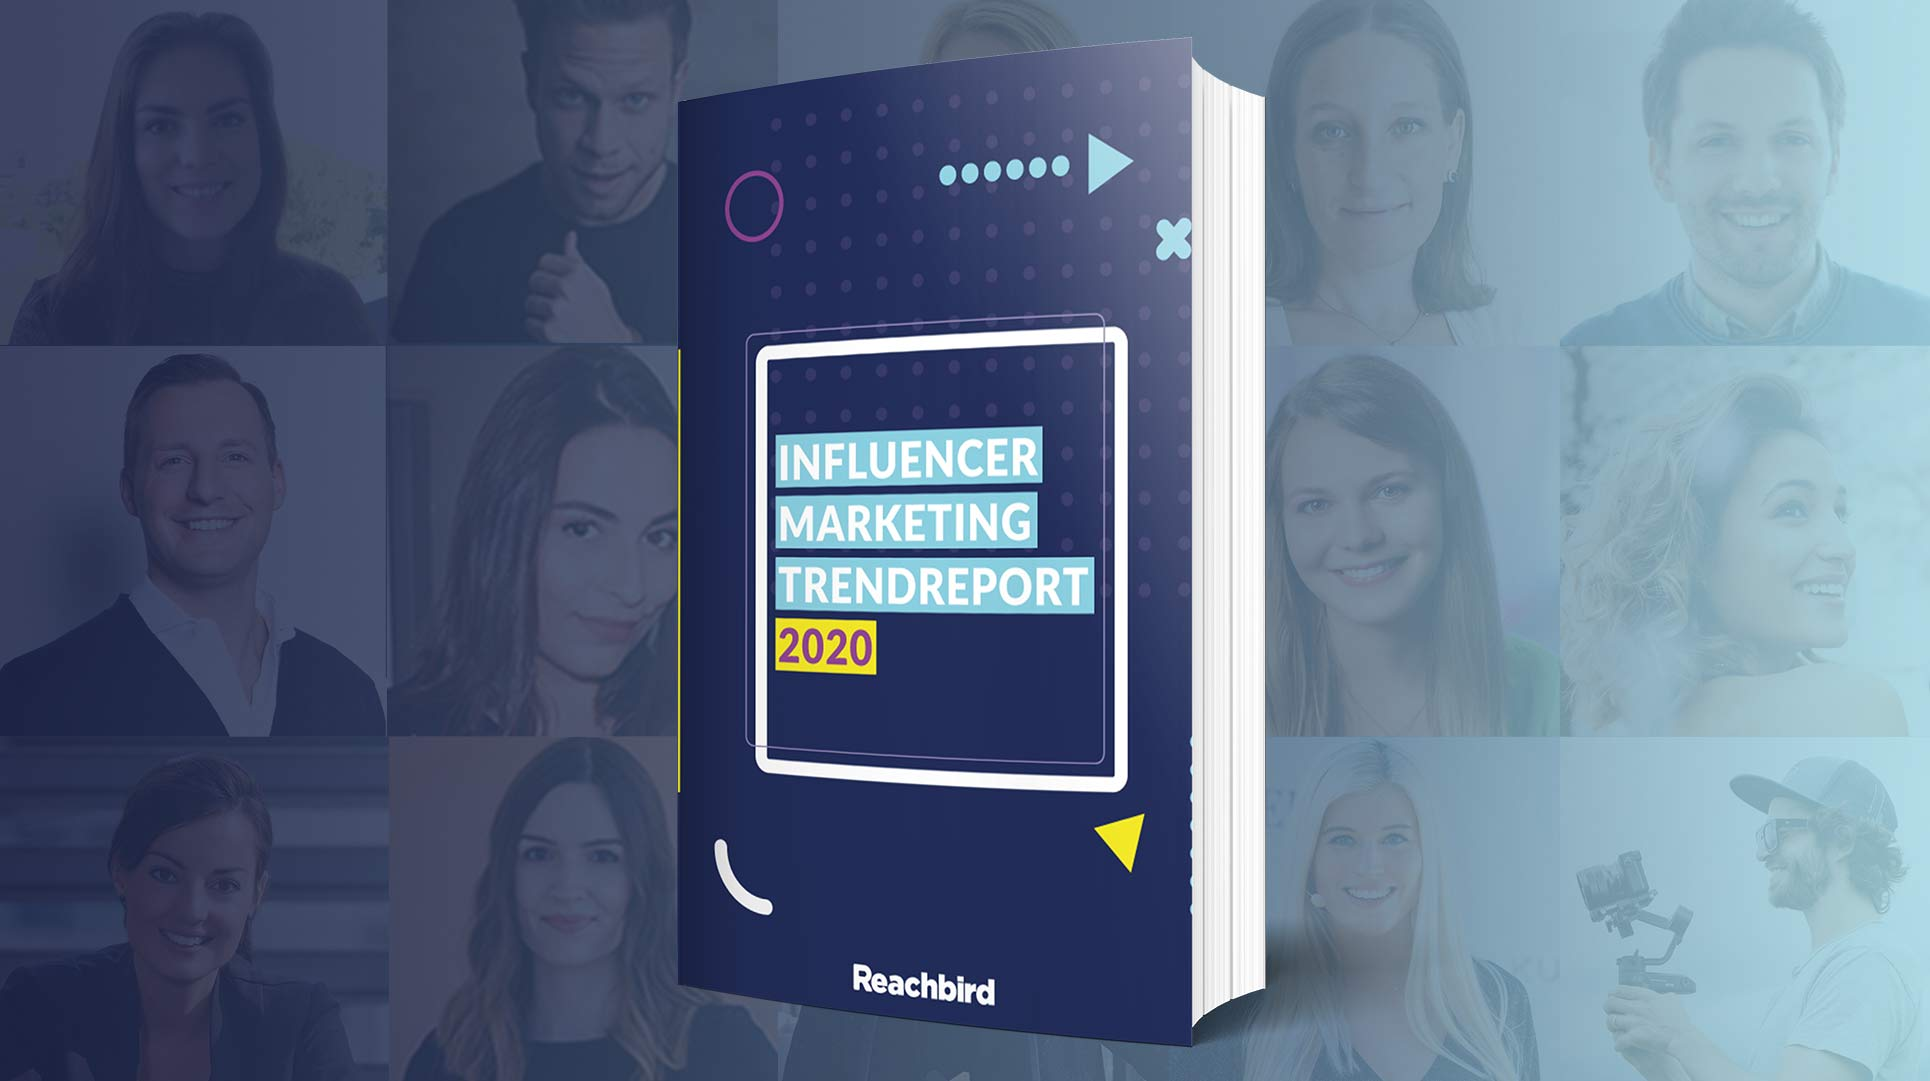 influencer marketing trendreport 2020